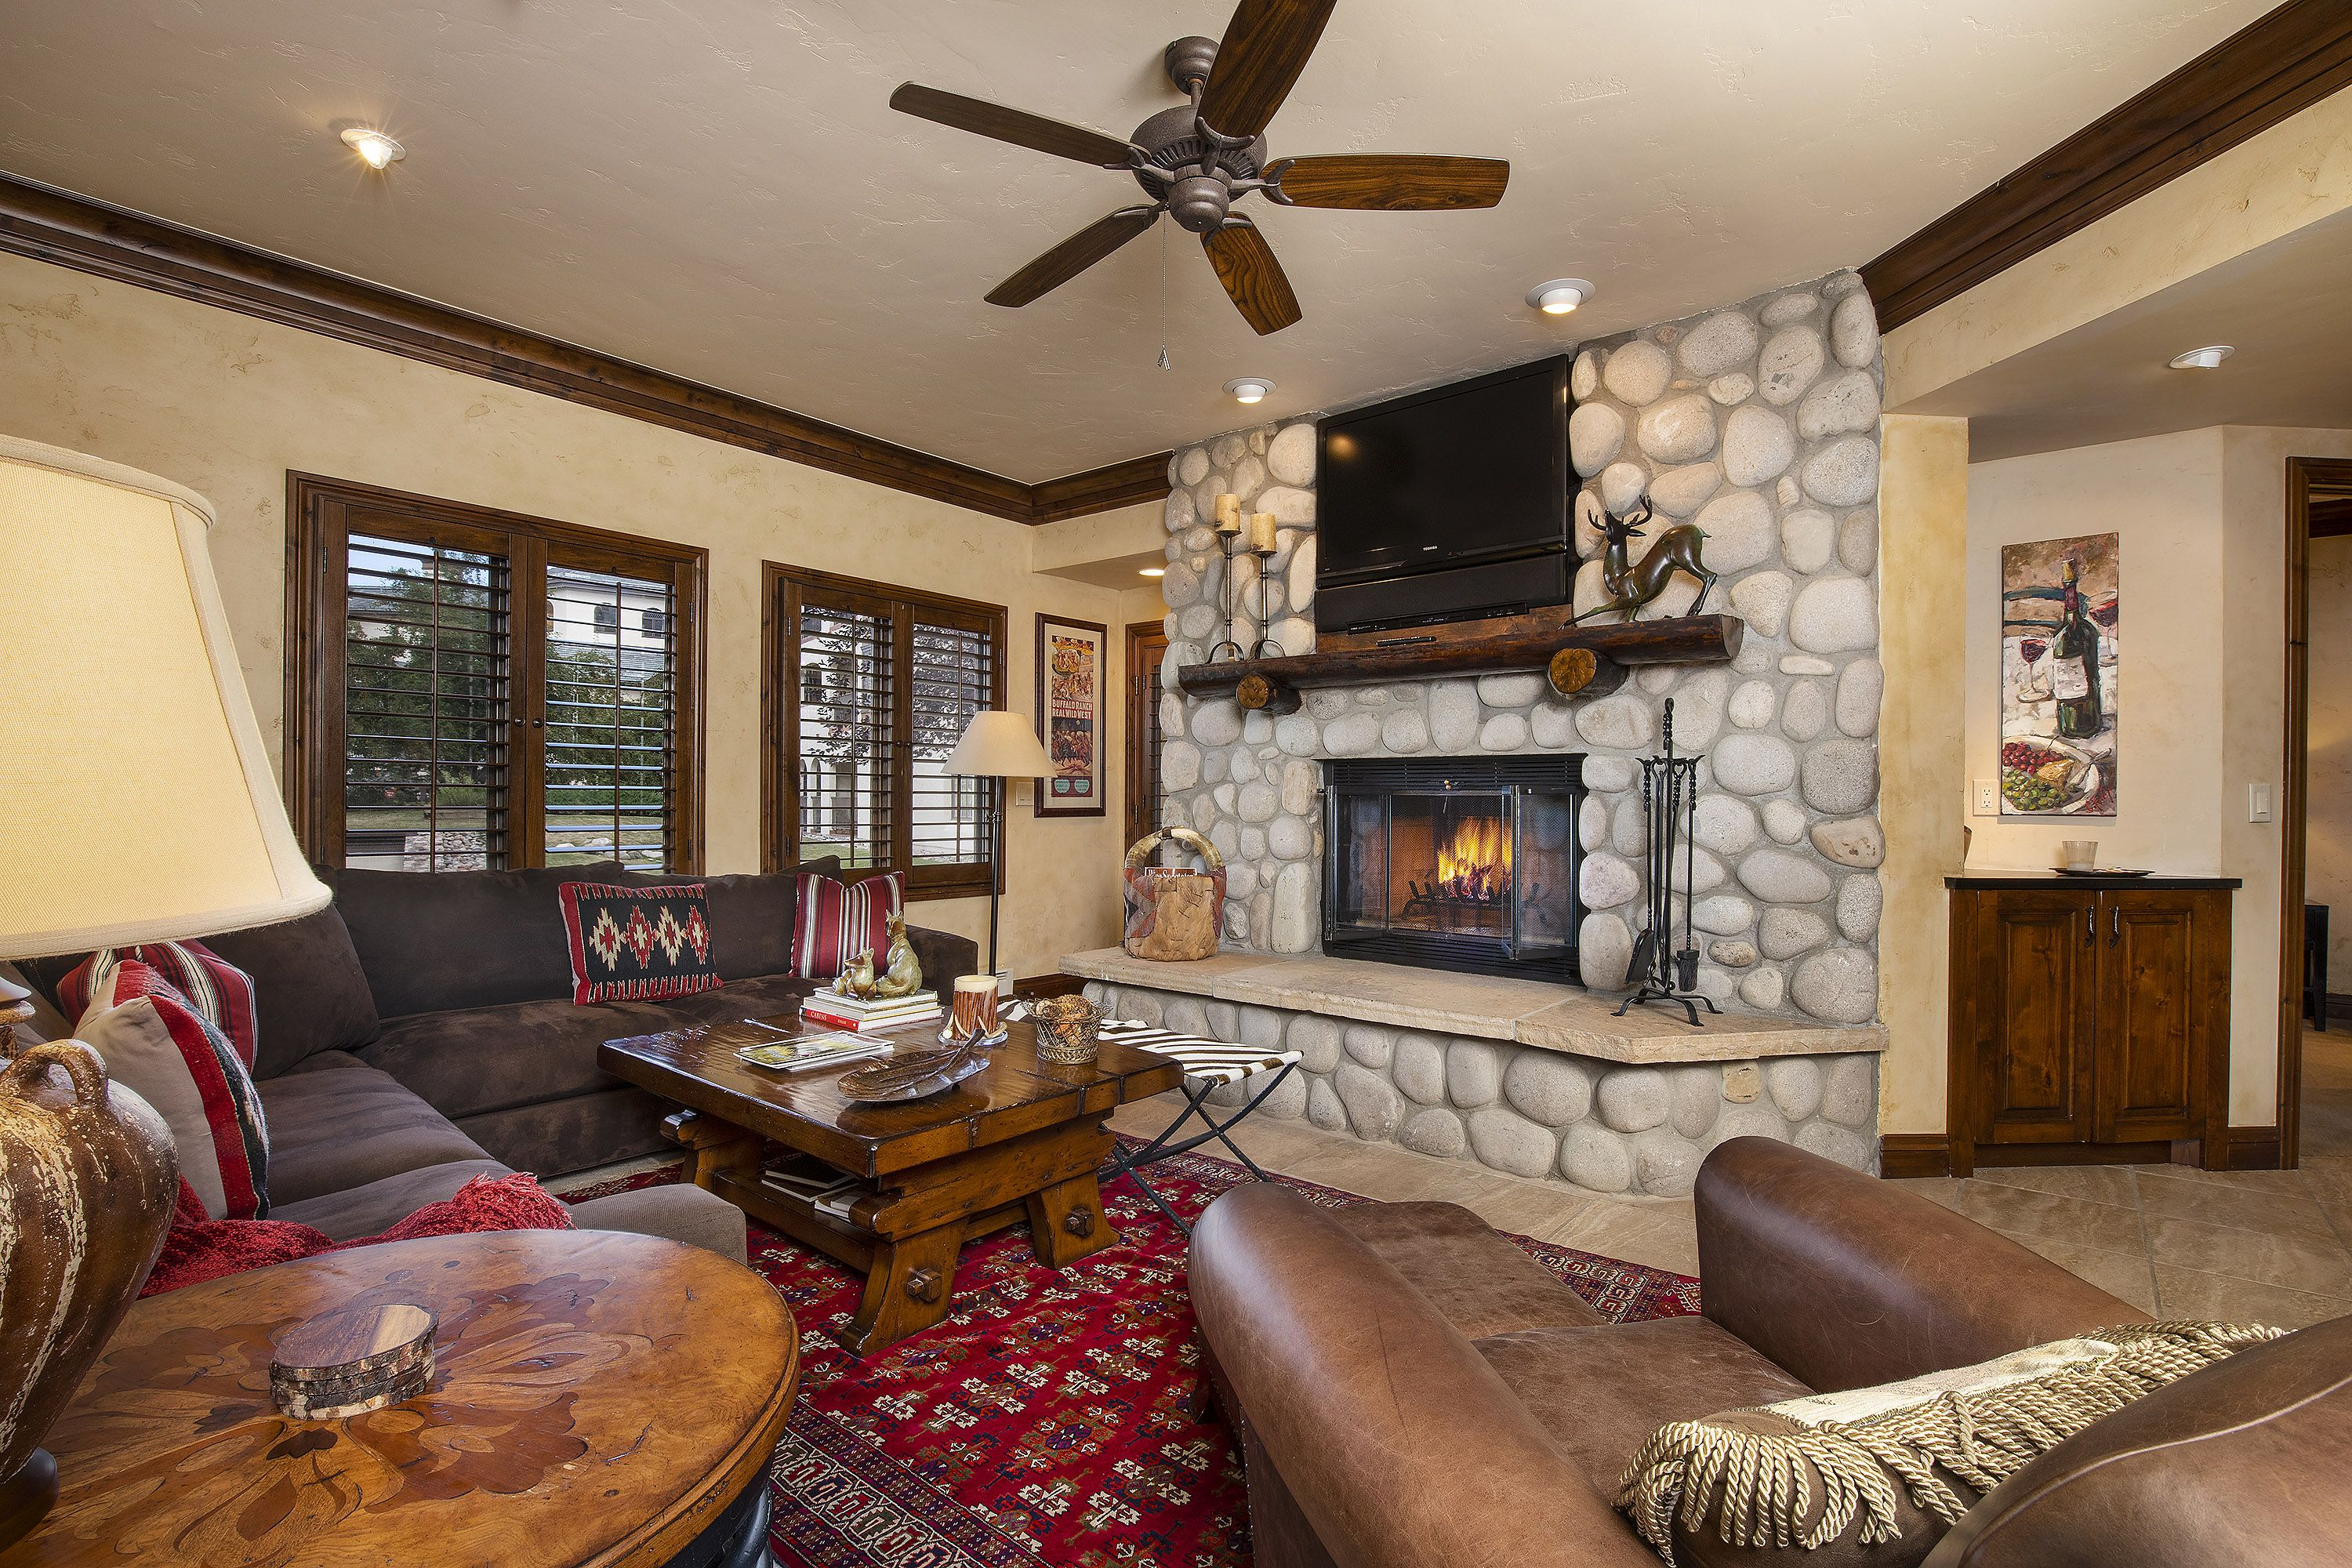 120 Offerson Road # 3160 Beaver Creek, CO 81620